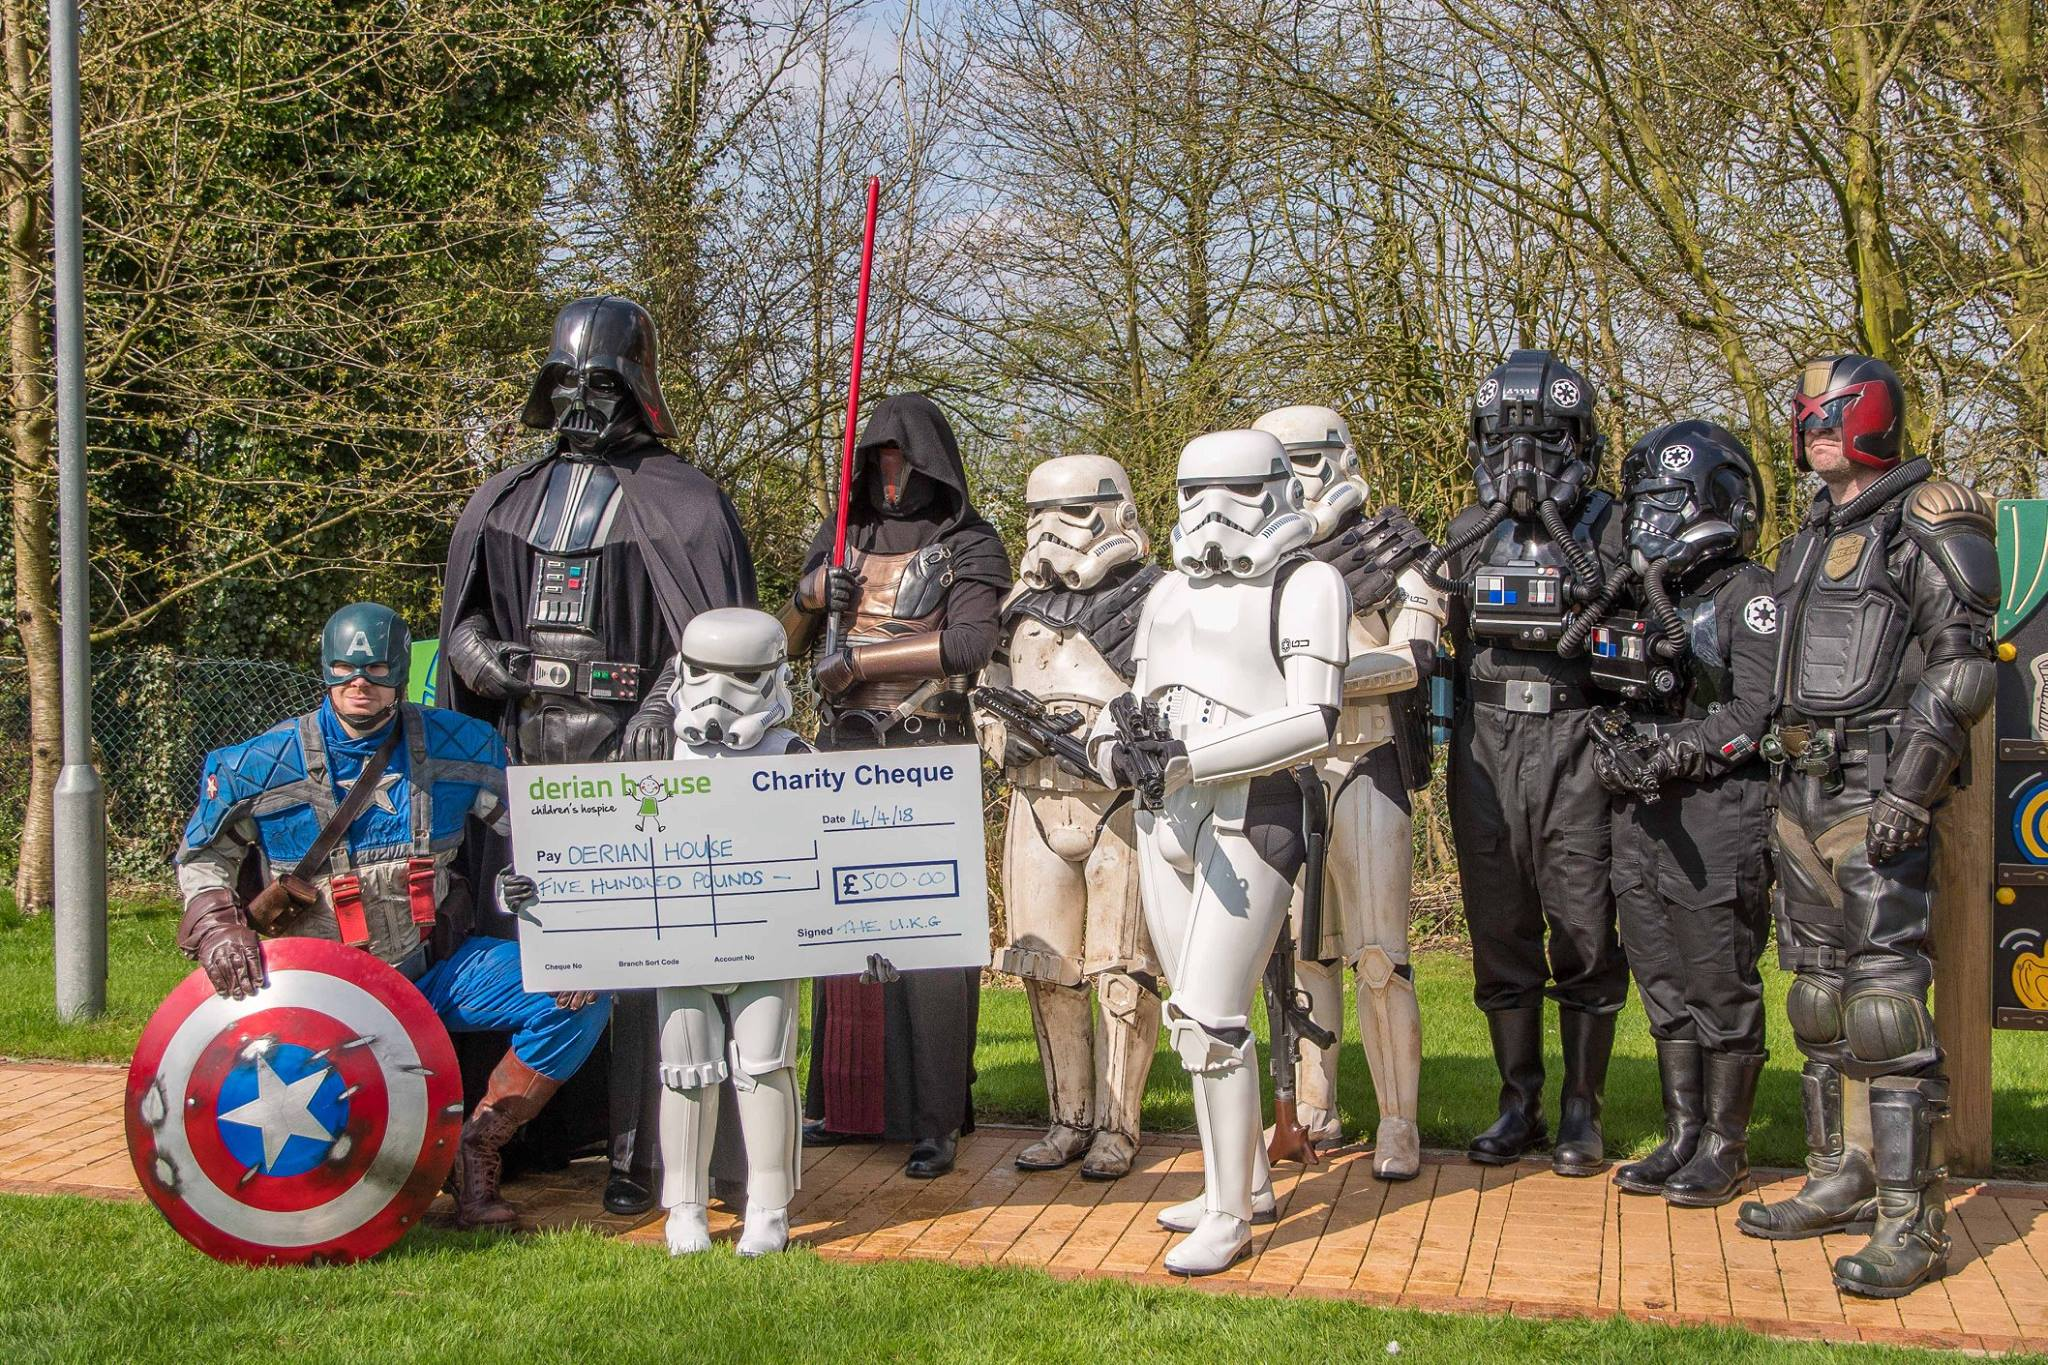 The UKG, Reel Icons and The Galactic Academy Hoth Campus United Kingdom paid a visit to Derian House Children's Hospice.